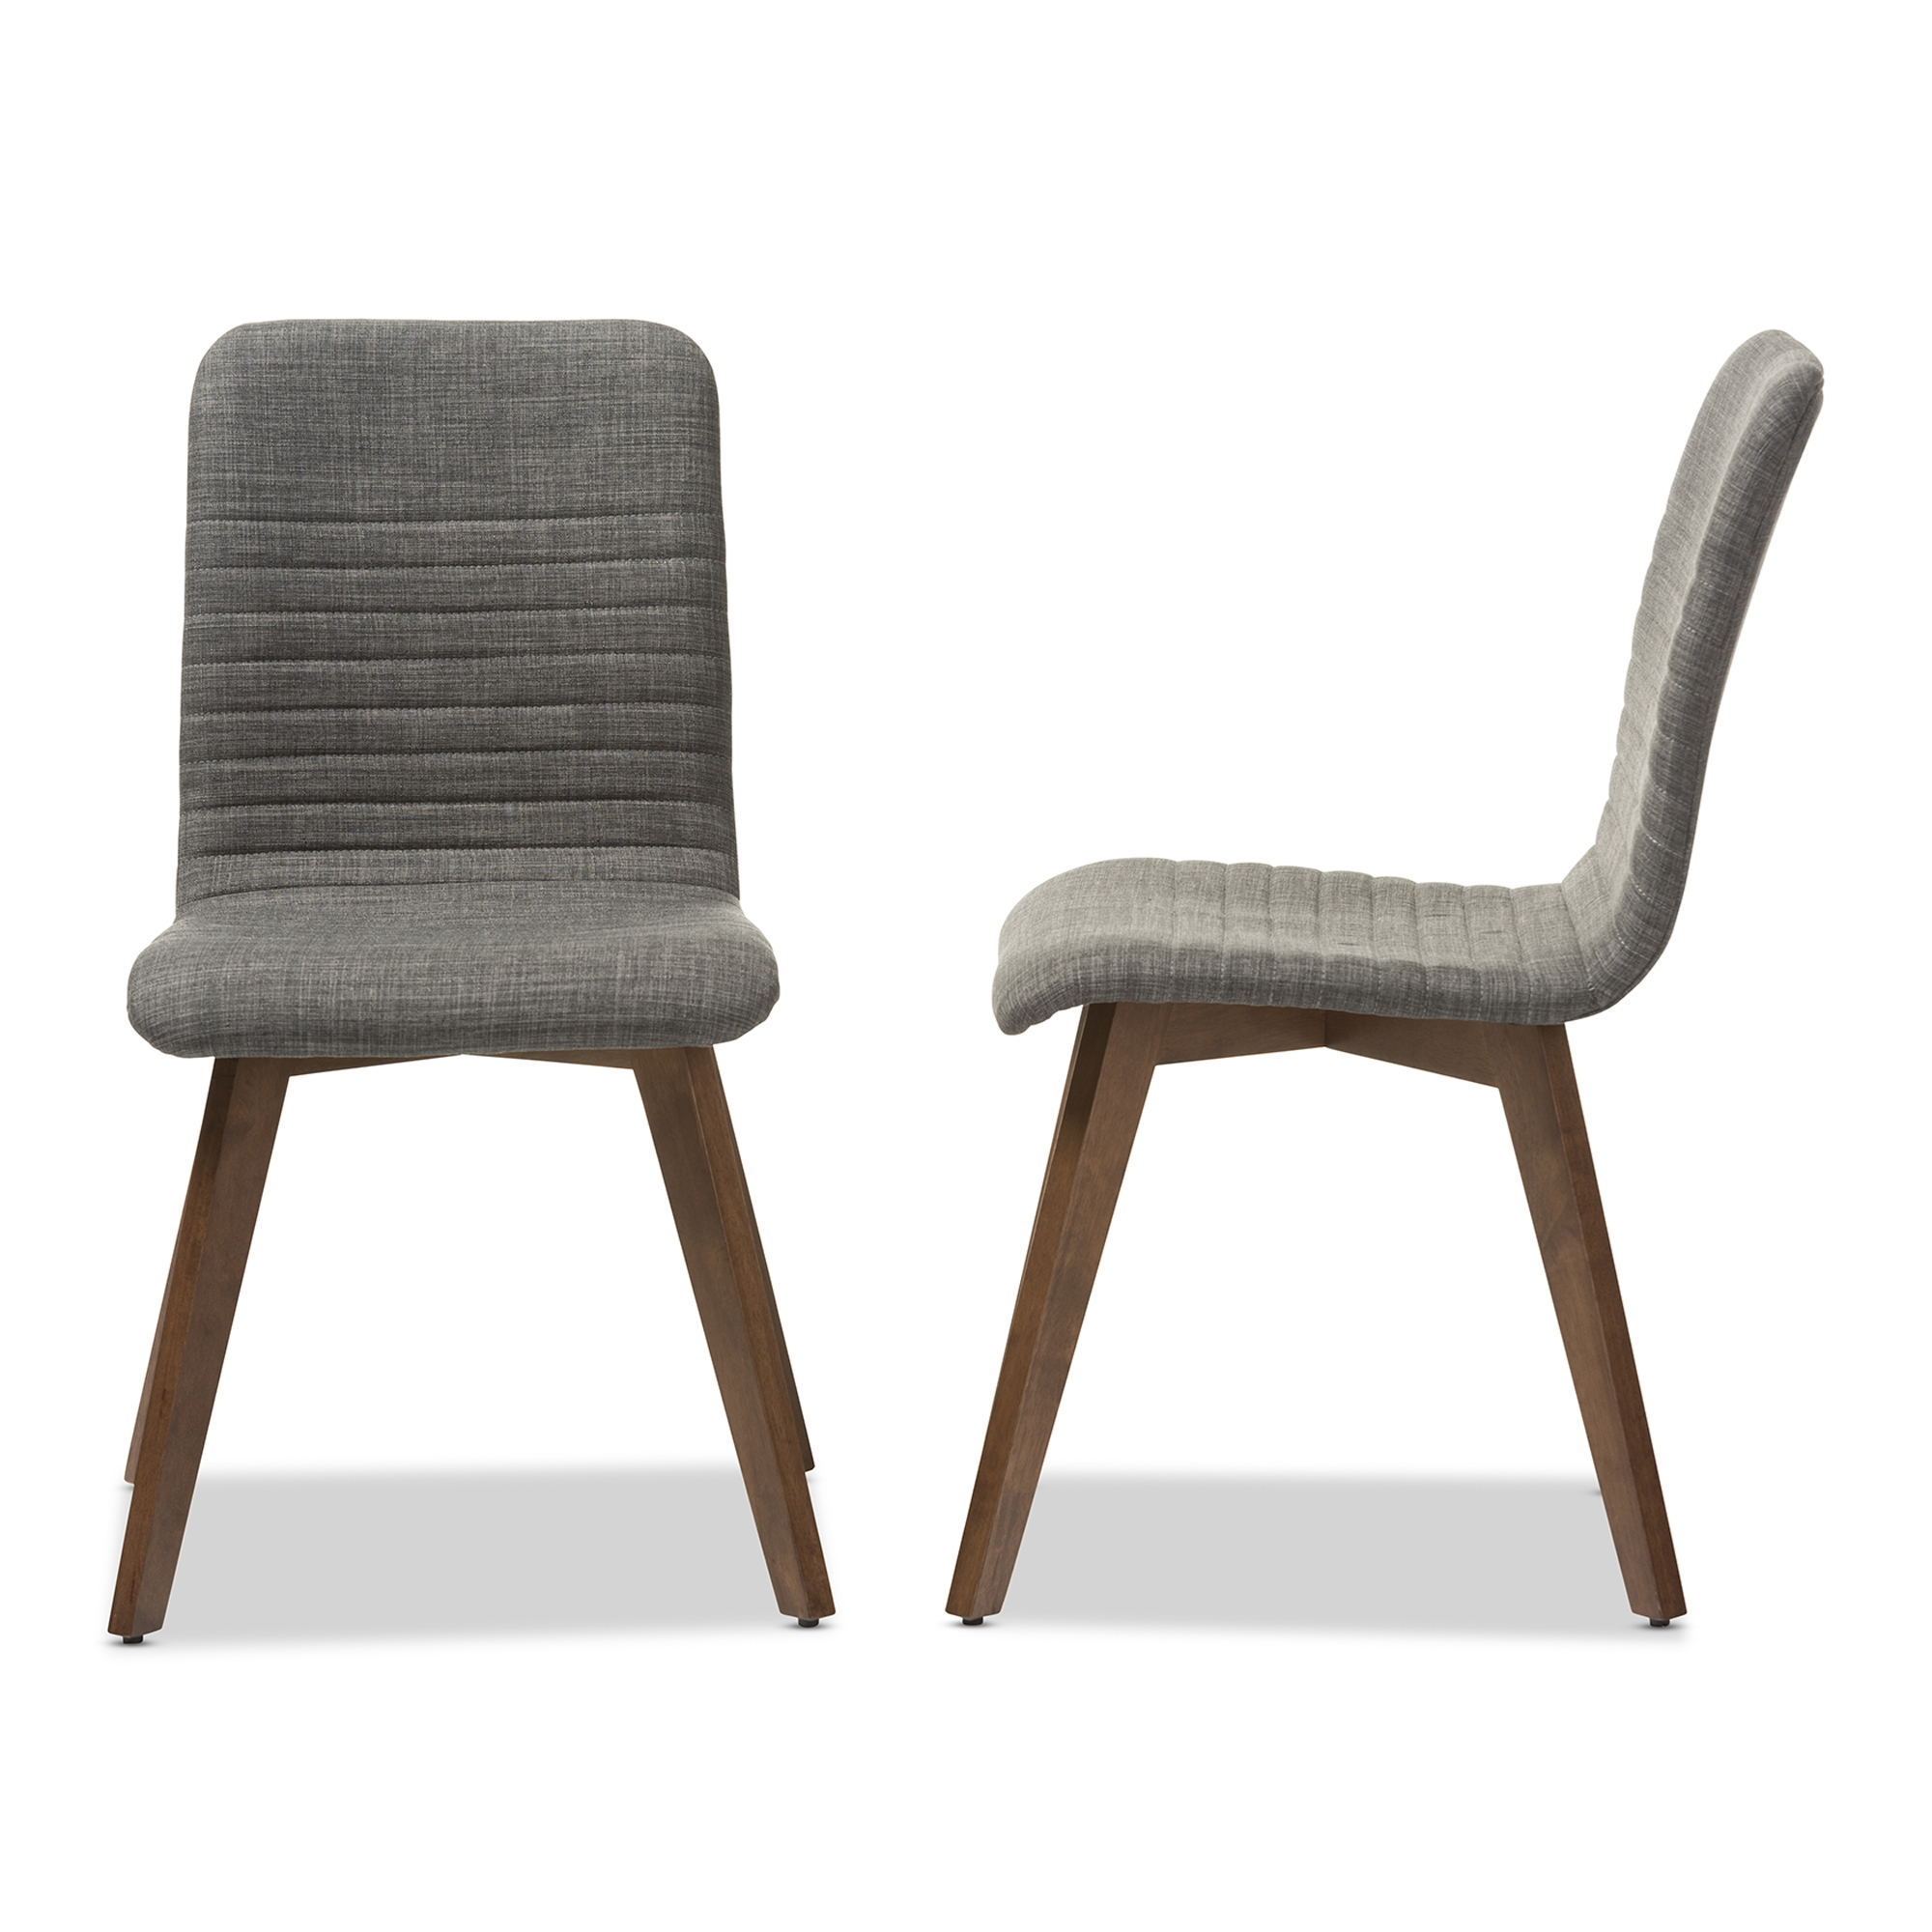 Baxton Studio | Wholesale Dining Chairs | Wholesale Dining Room Furniture |  Wholesale Furniture